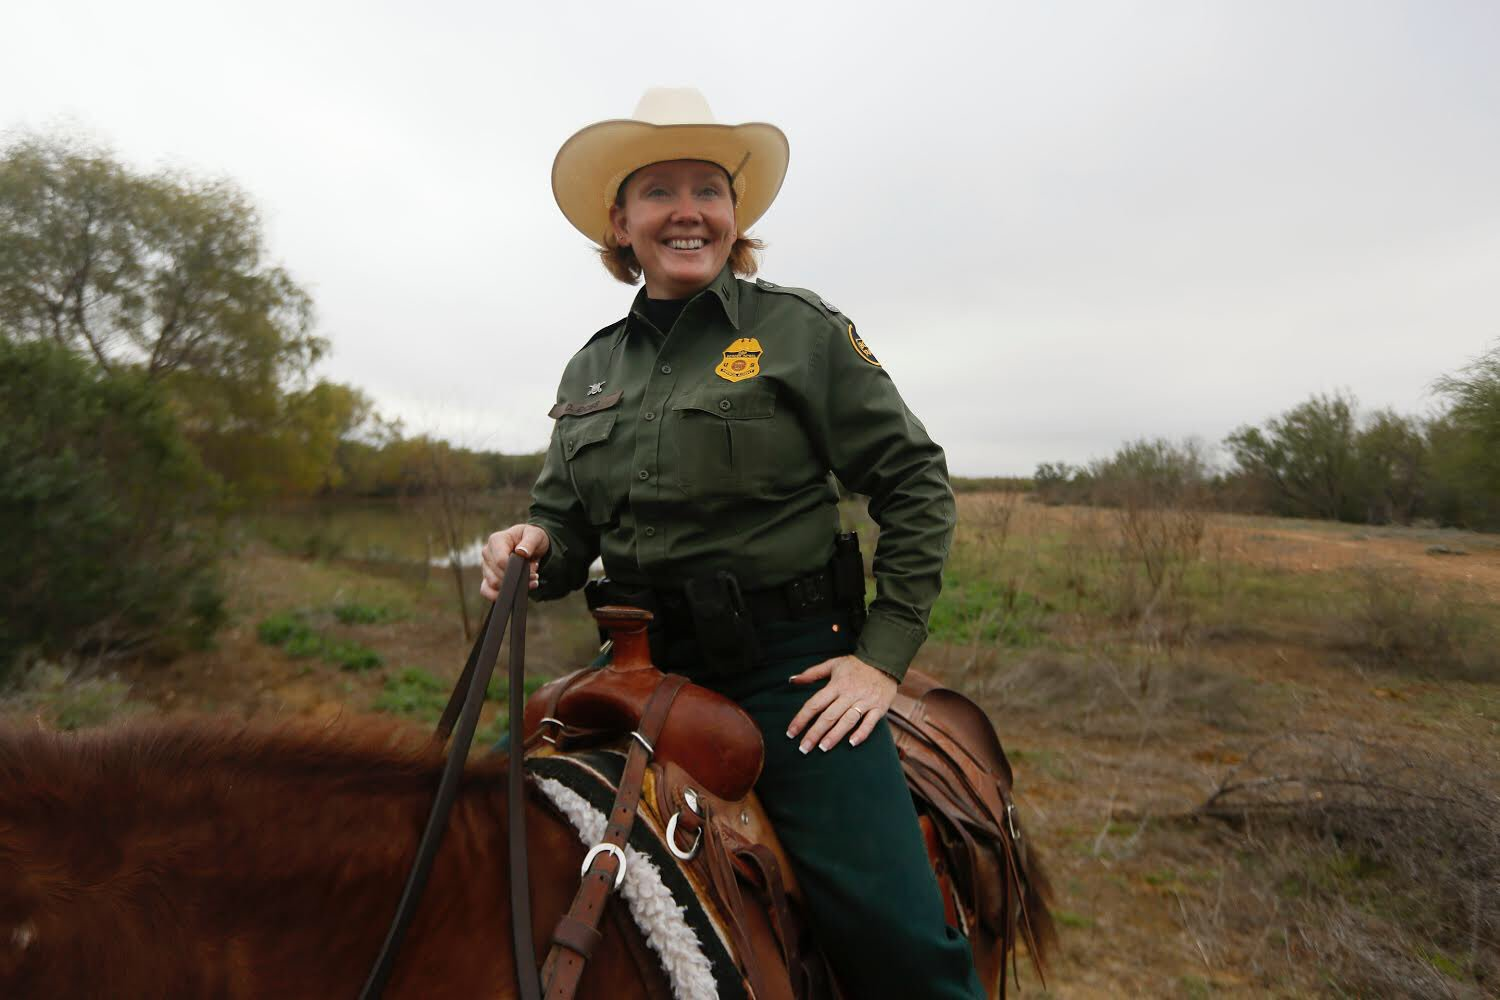 Border Patrol Agent Donna Doss | United States Department of Homeland Security - Customs and Border Protection - United States Border Patrol, U.S. Government